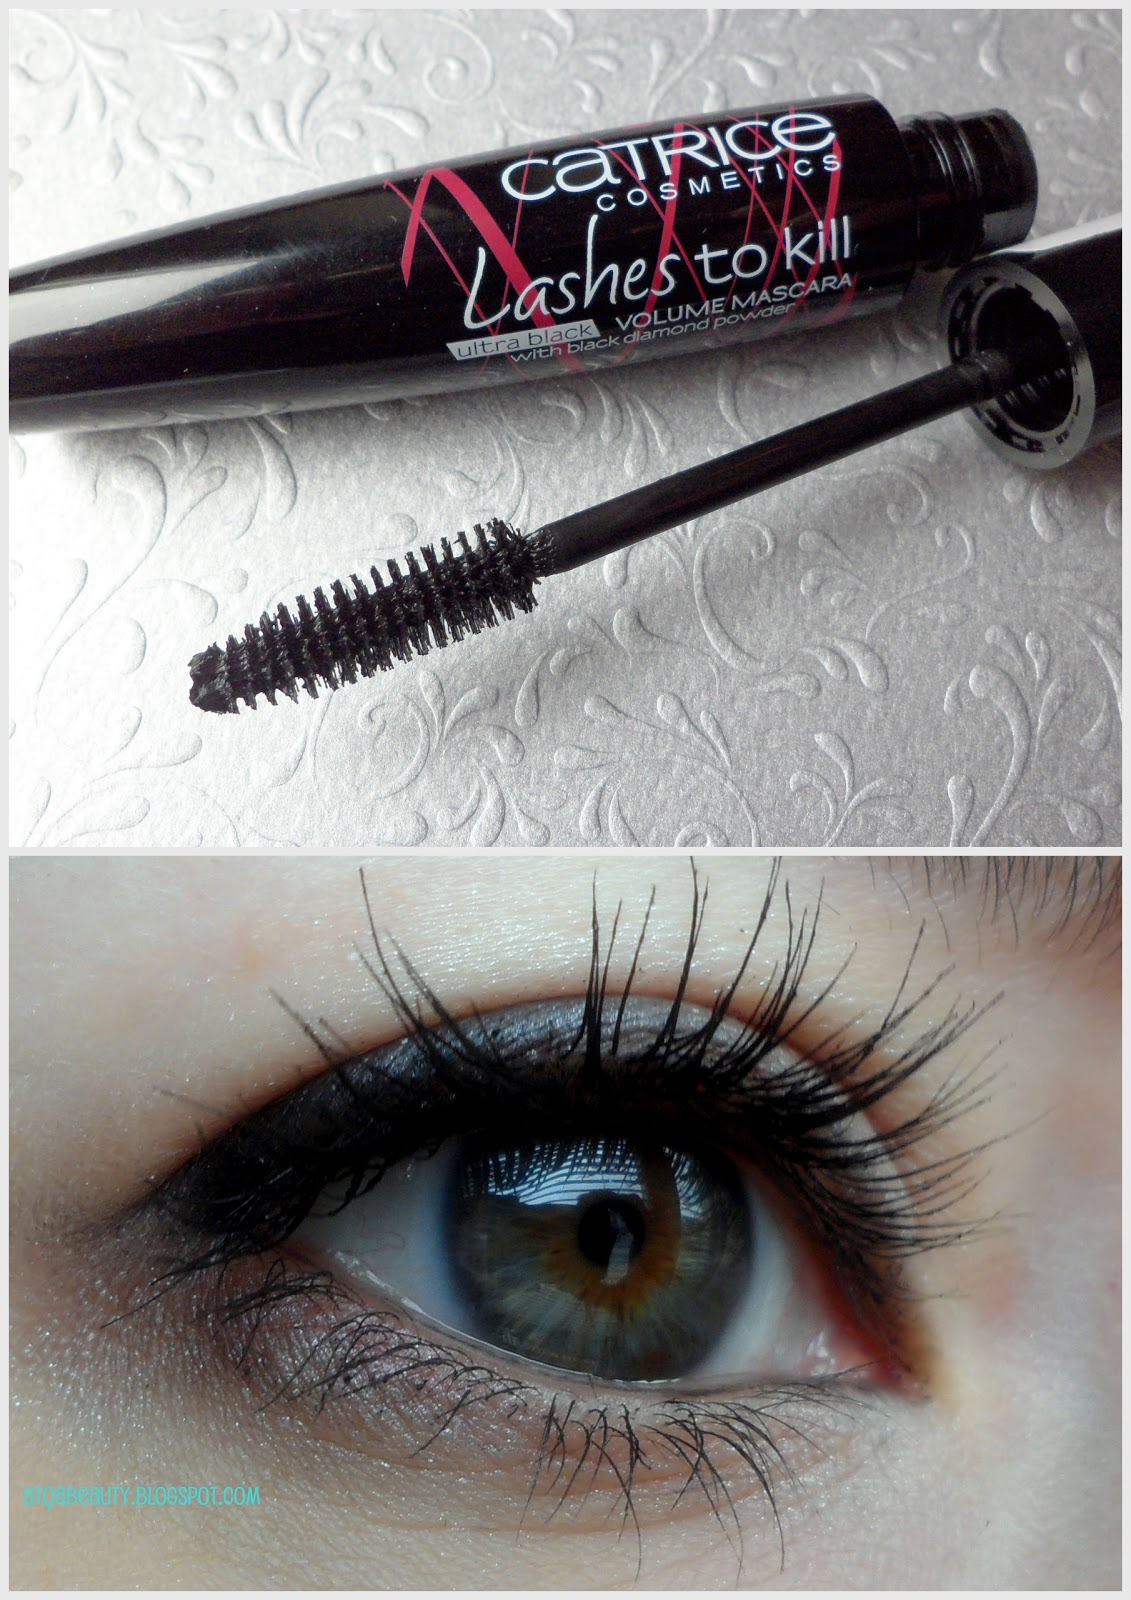 Catrice Lashes to Kill Ultra Black Volume Mascara With Black Diamond Powder